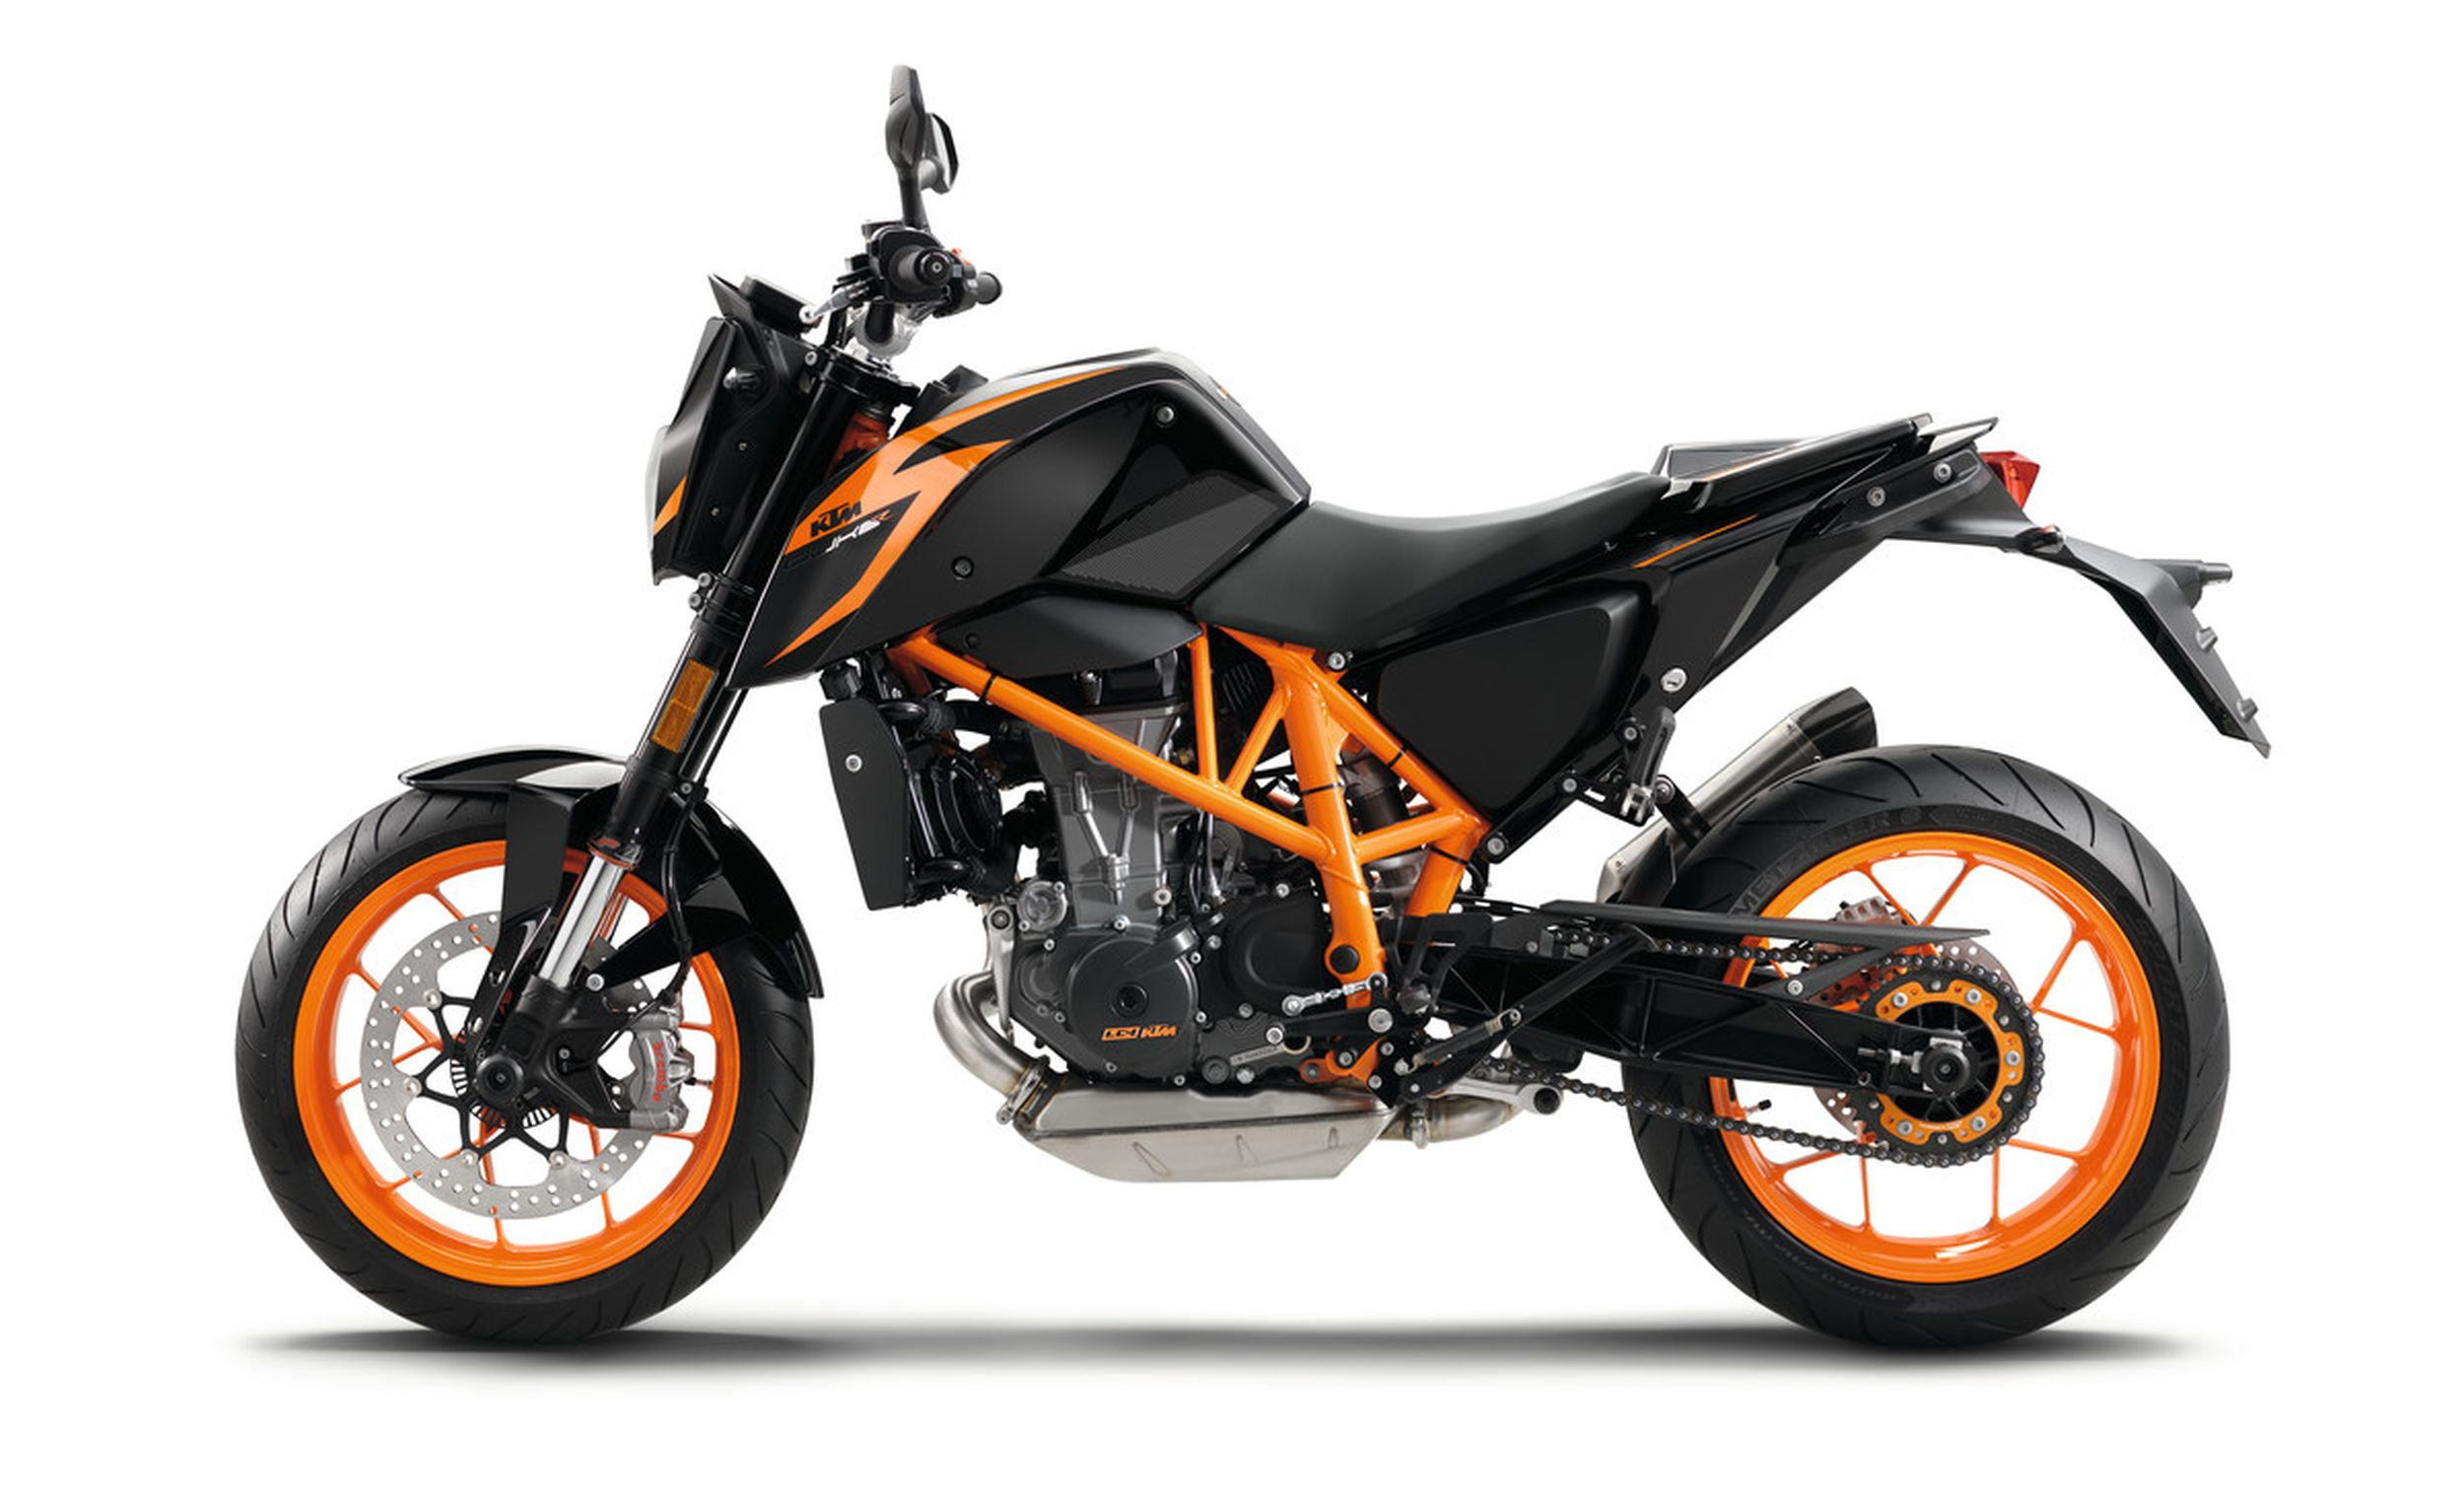 gebrauchte und neue ktm 690 duke r motorr der kaufen. Black Bedroom Furniture Sets. Home Design Ideas